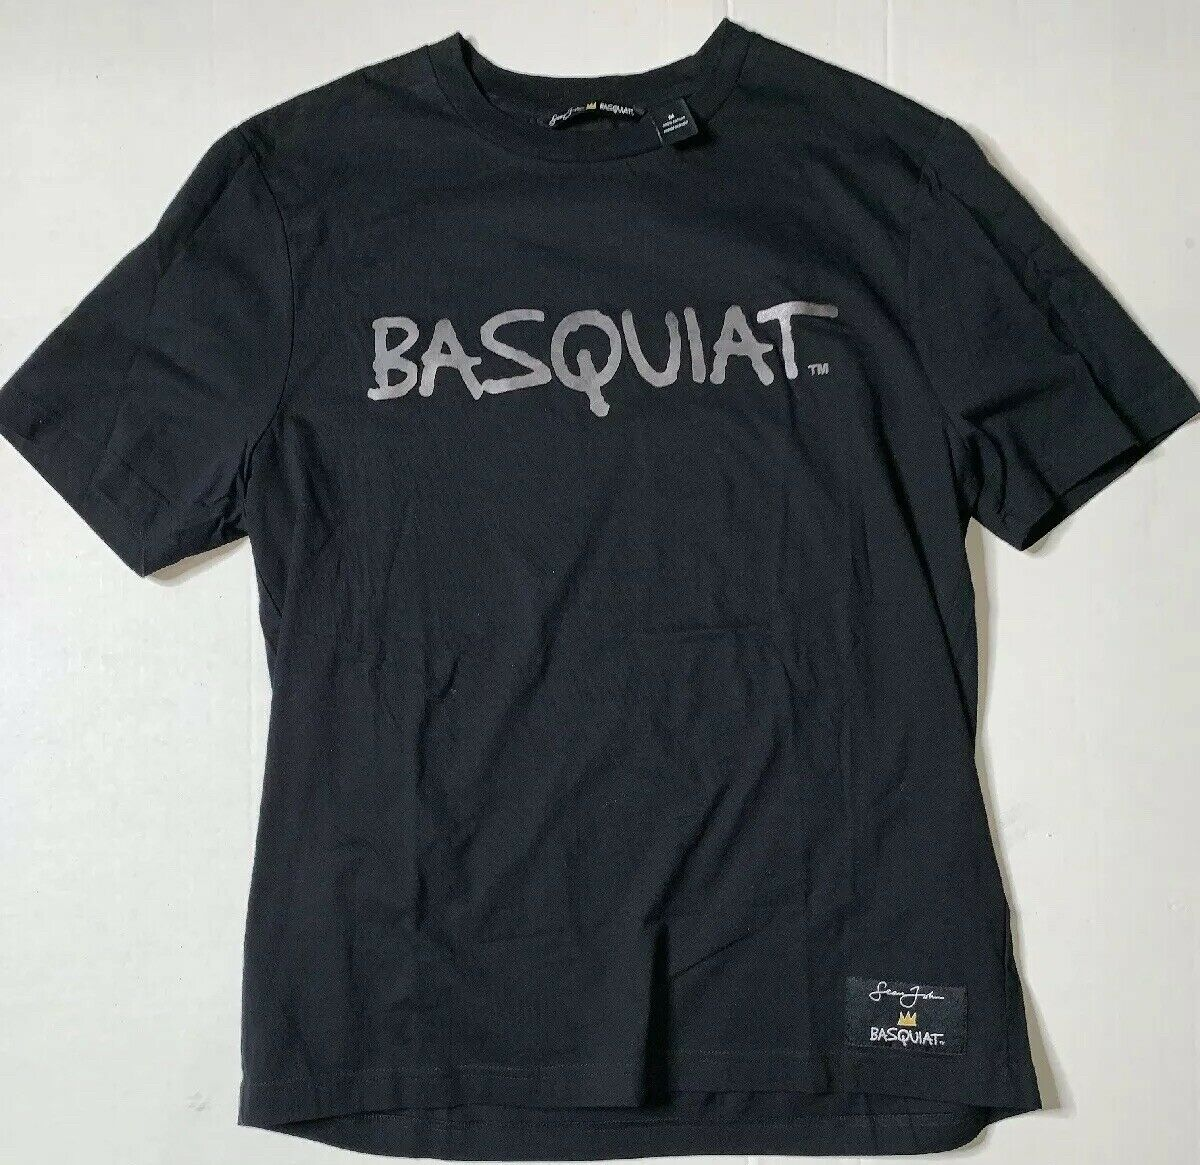 Preowned- LIMITED Sean John Basquiat T-Shirt Men's (Size M)